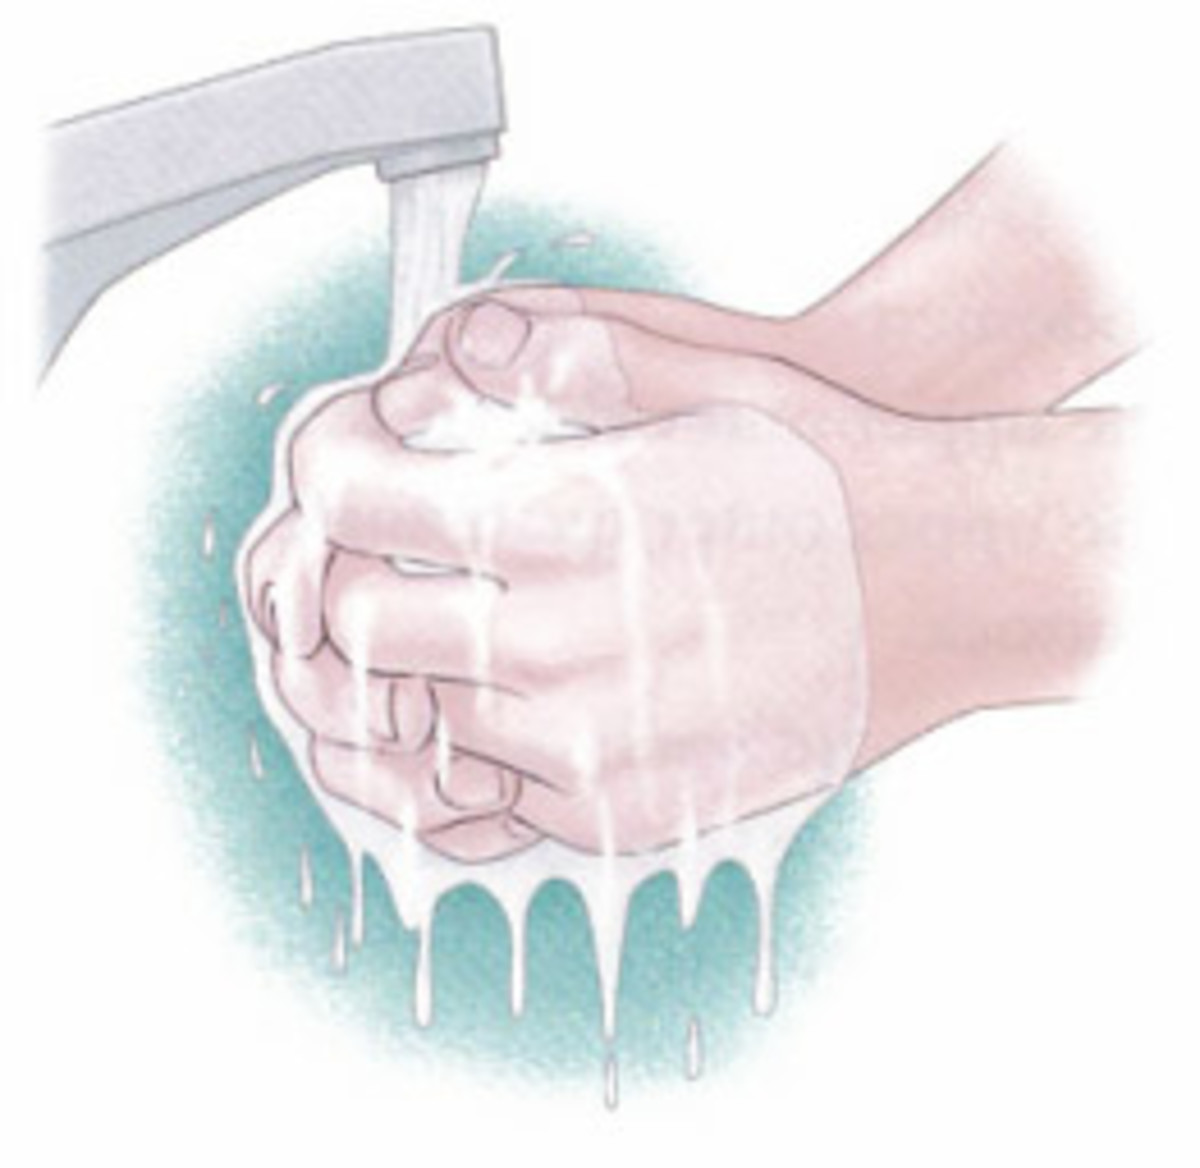 Wash hands with disinfectants